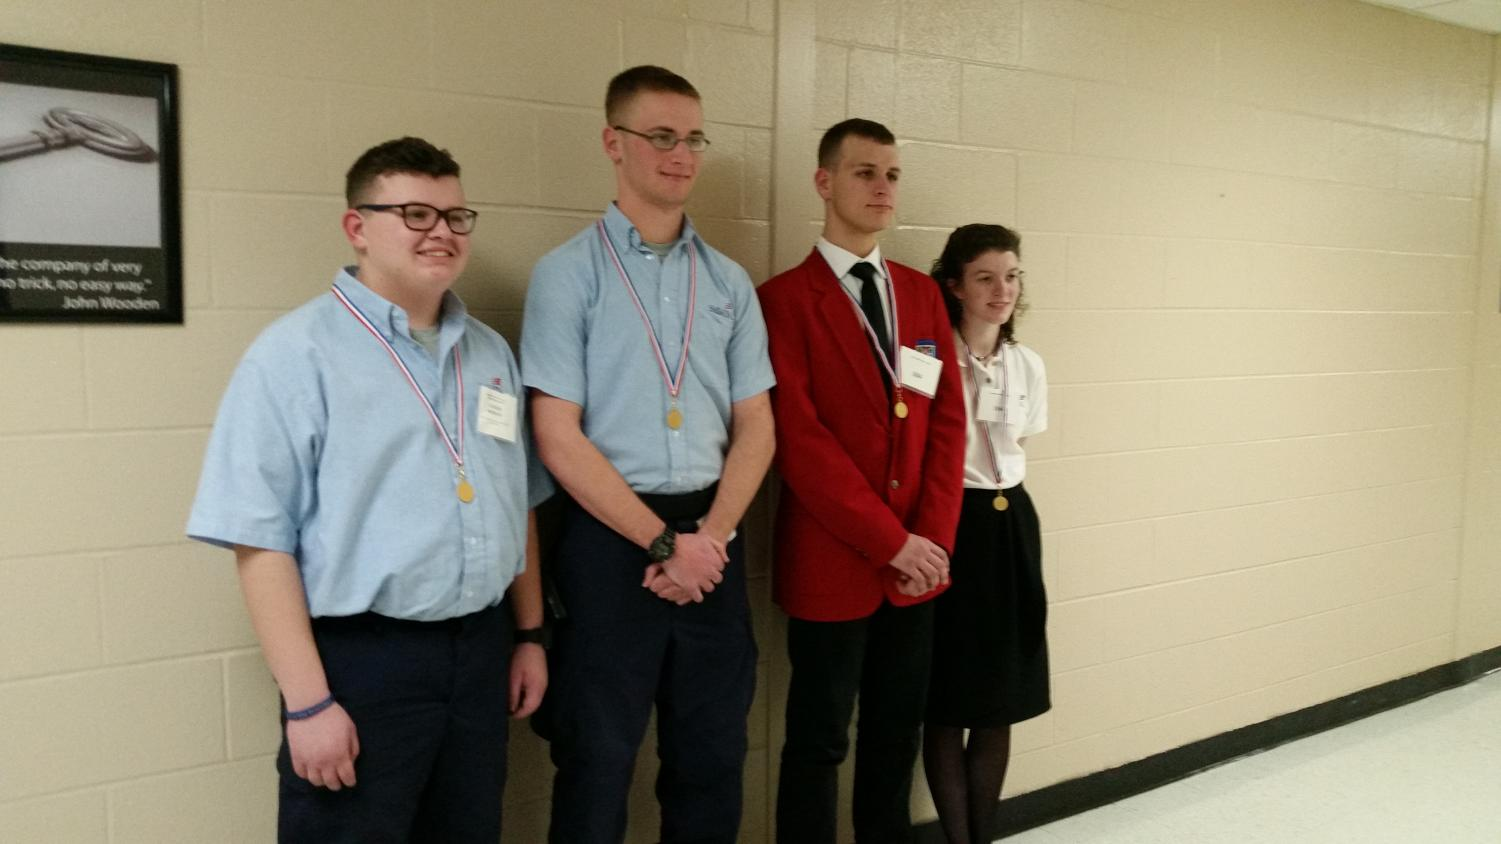 SkillsUSA winners from regionals (from left): Tanner Brisbane, Elisha Carter, Xavier Lowry, and Shelby Mckinney. Not Pictured: Tyler Williams.